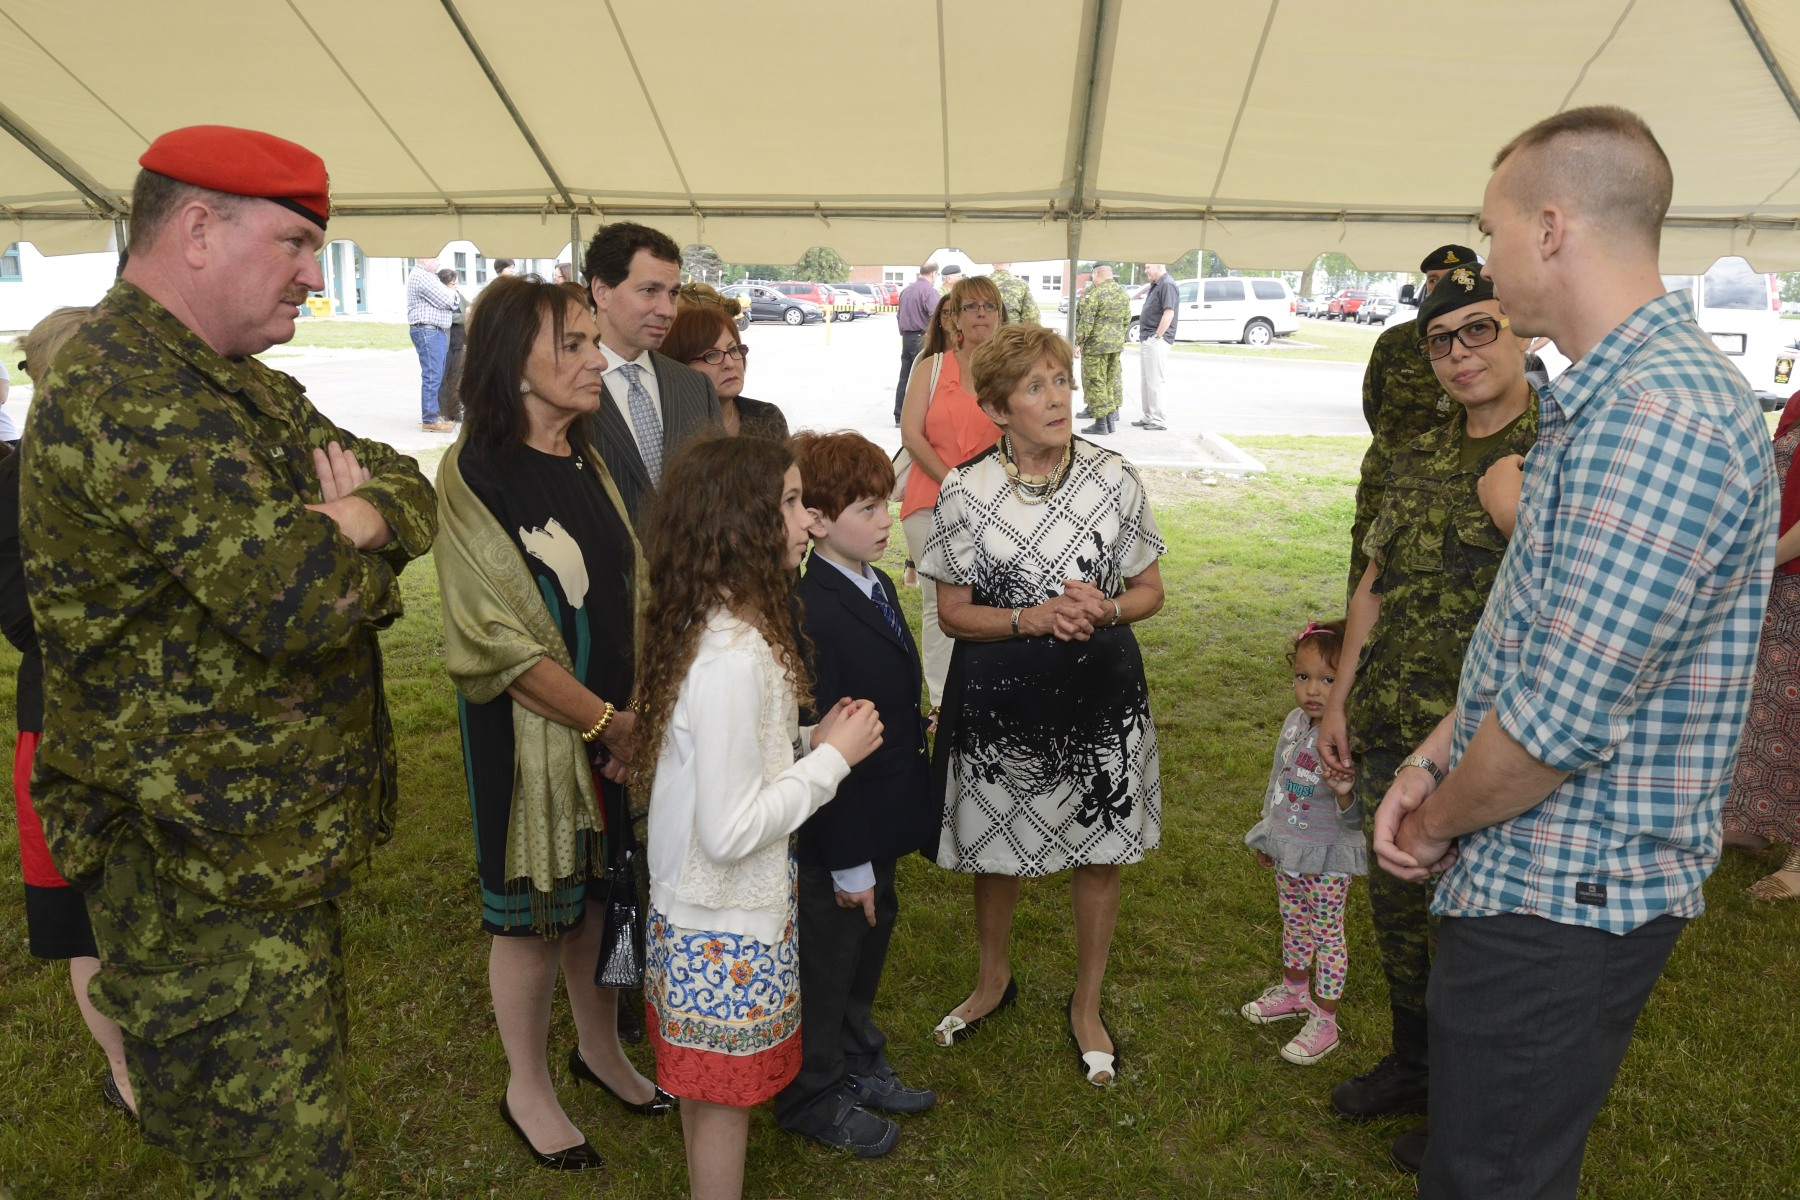 Following the unveiling, Mrs. Johnston met with members from the Joint Personnel Support Unit Eastern Ontario Regional Headquarters and the Integrated Personnel Support Centre of Garrison Petawawa.